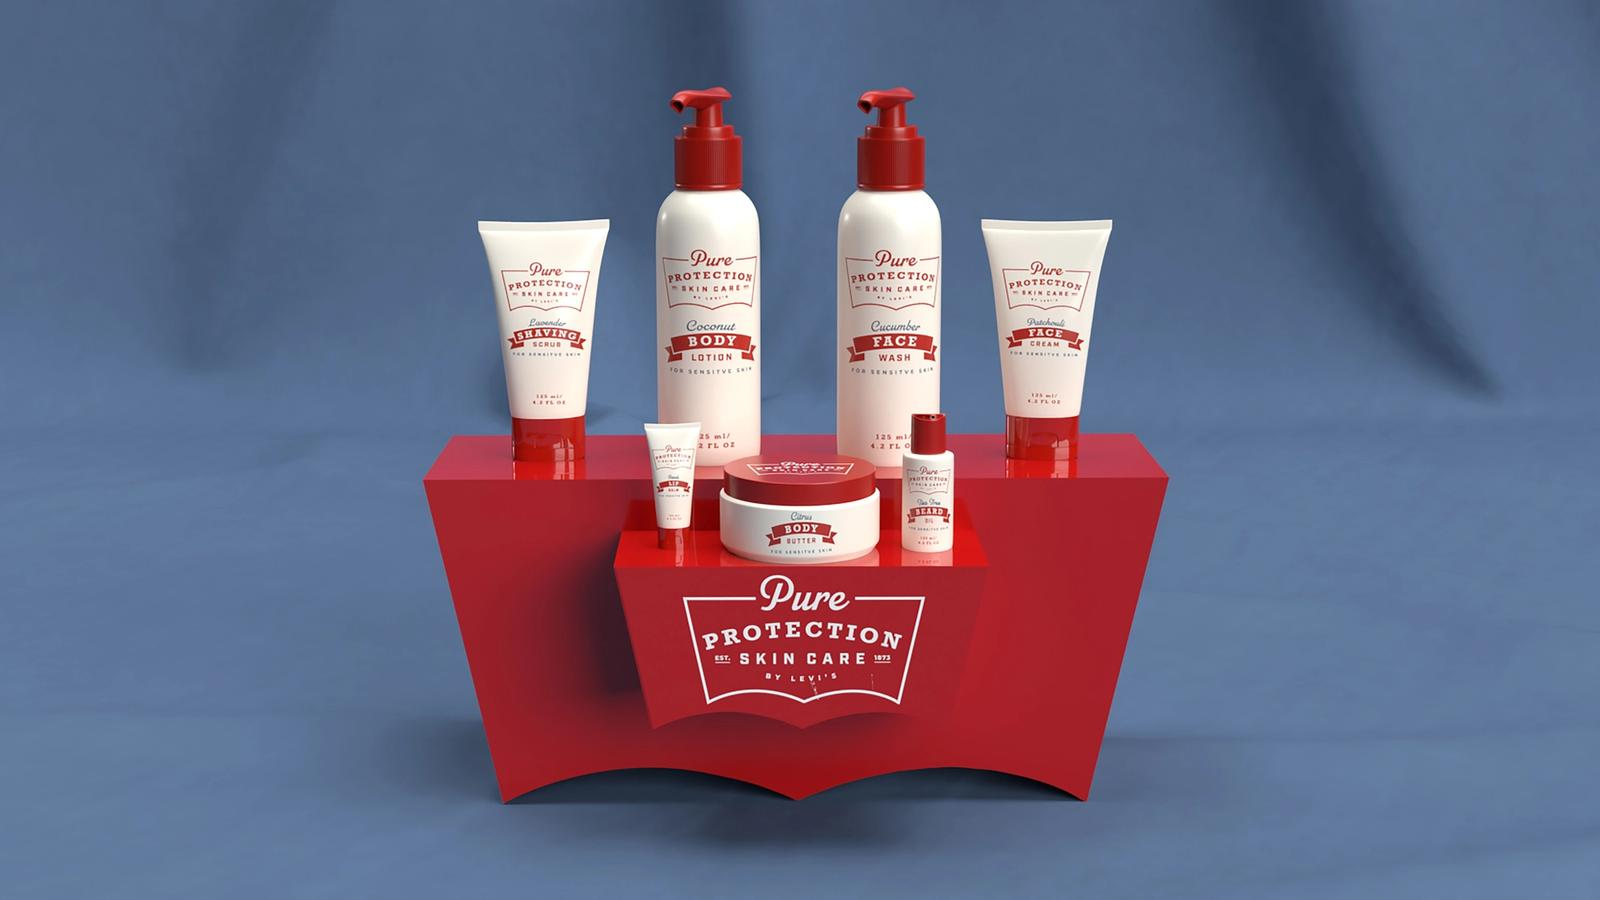 Pure Protection Skincare by Levi's // In Store Display